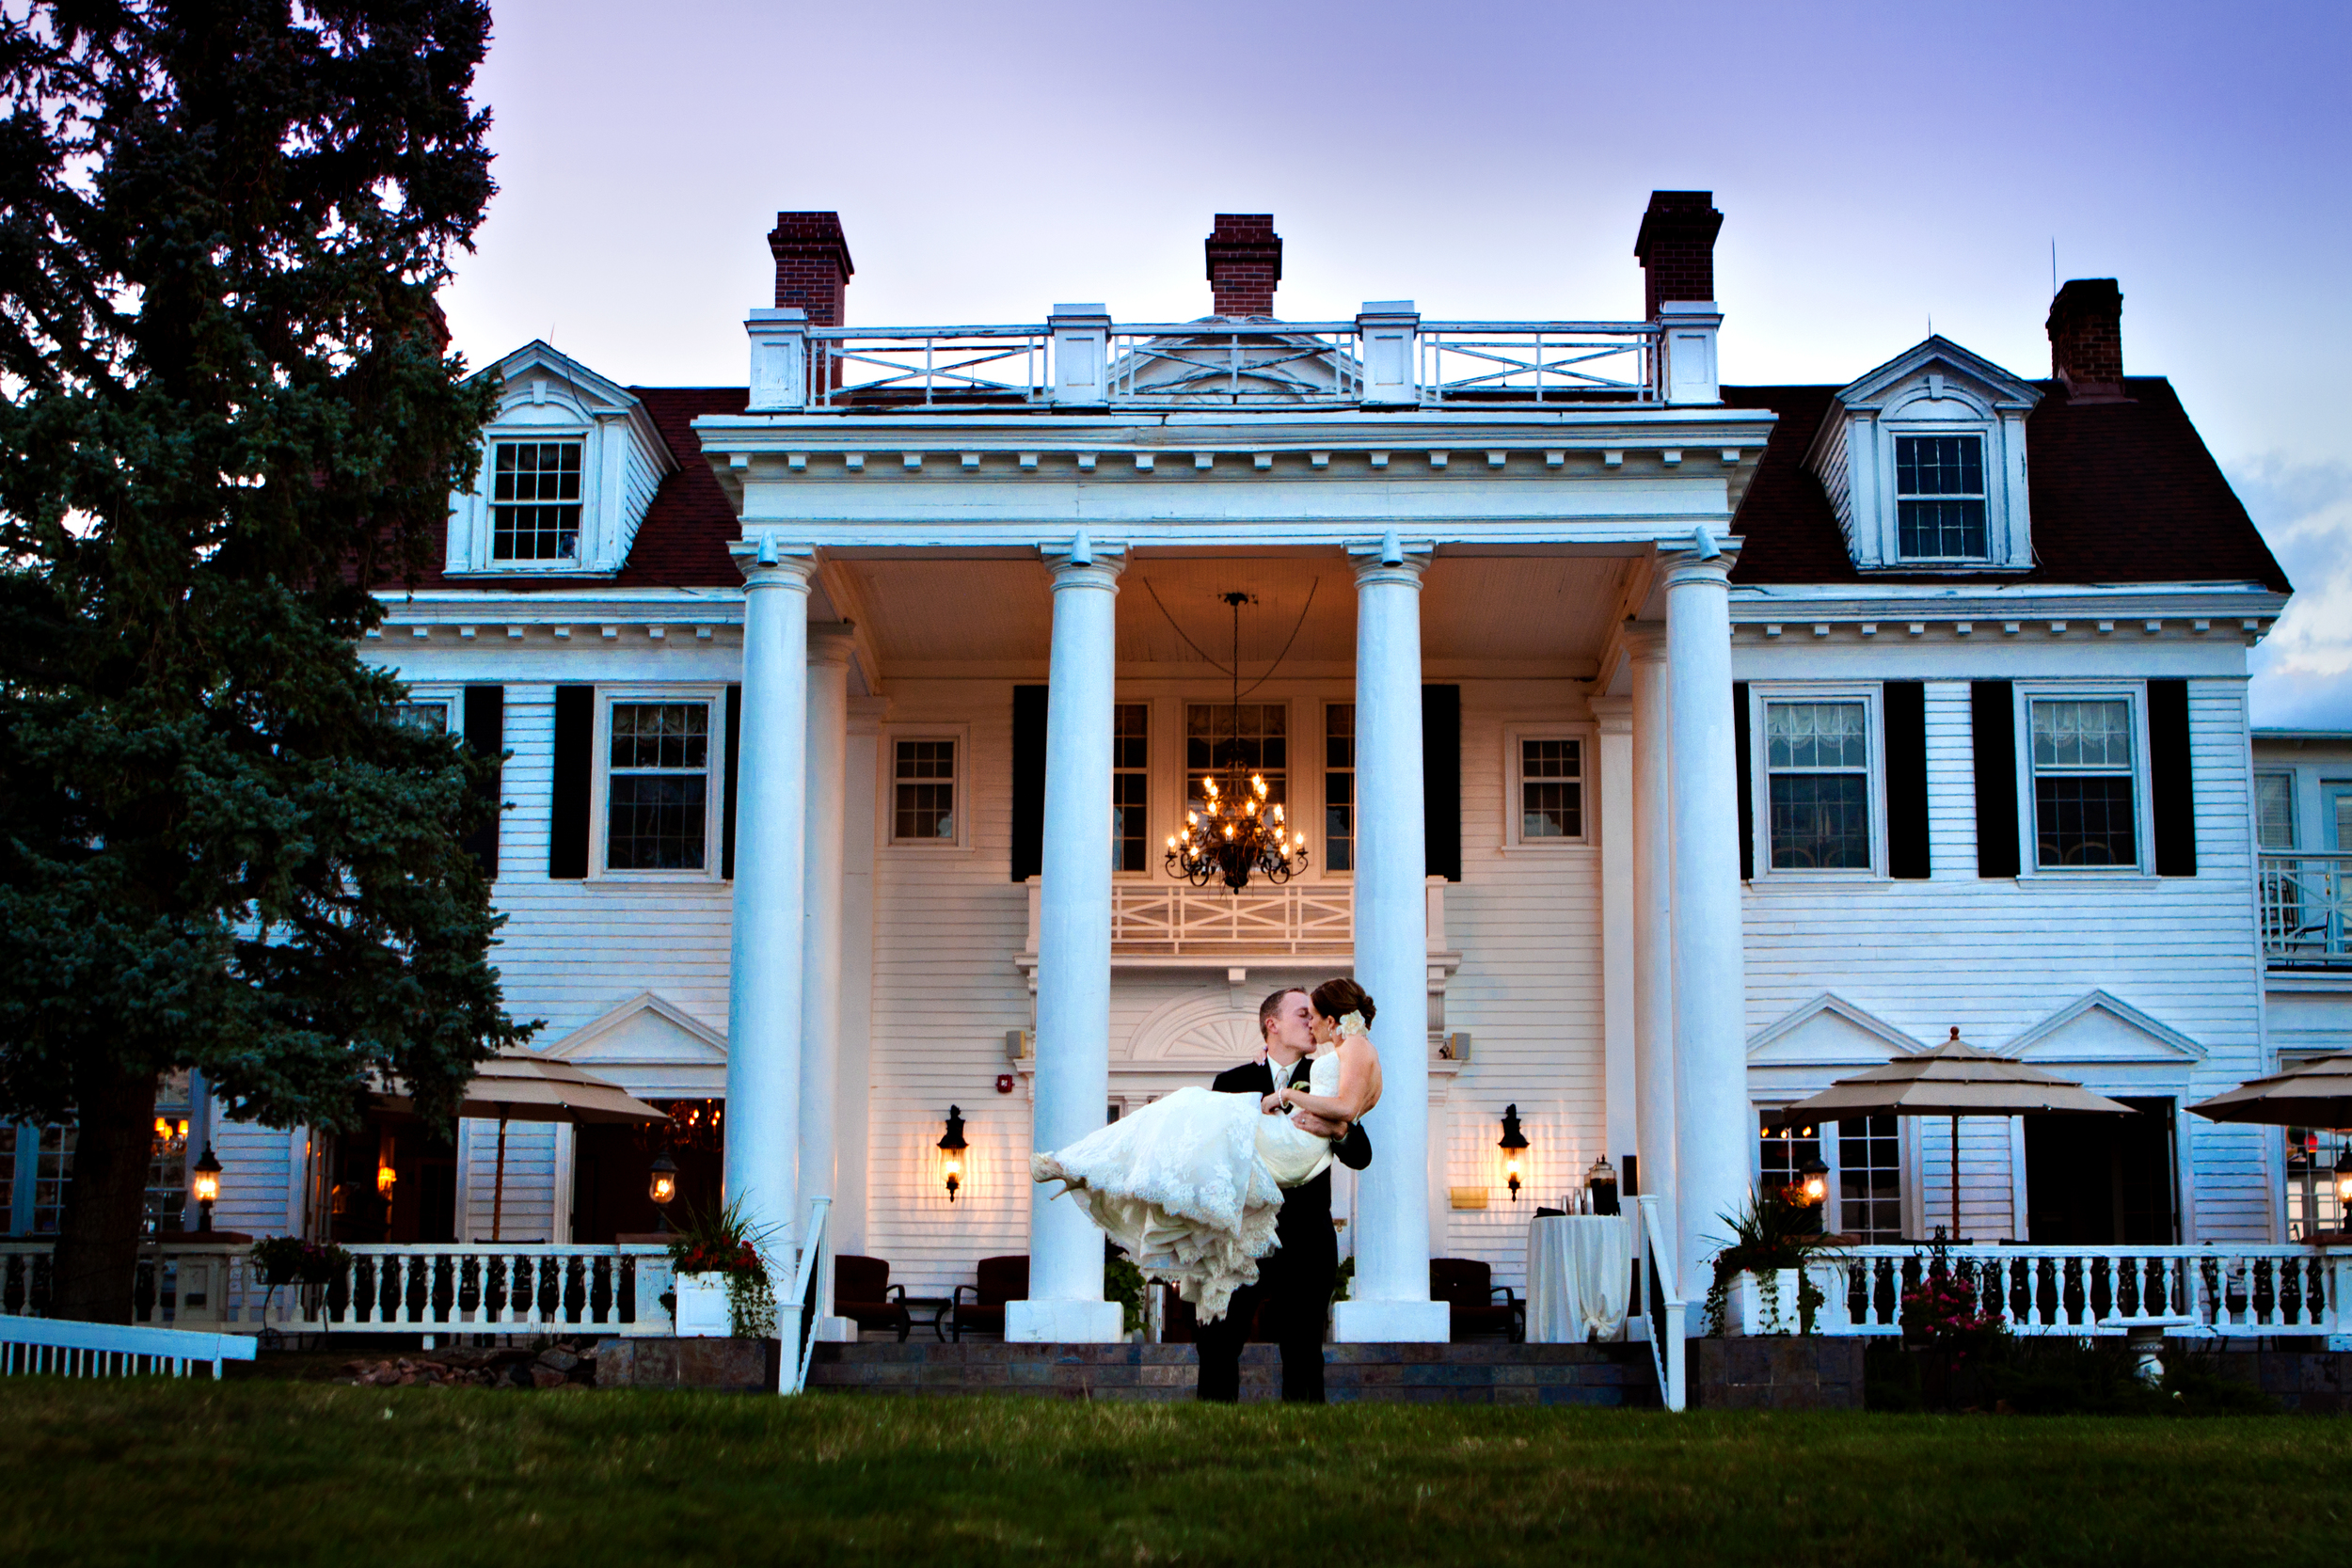 In front of the mansion, right at sunset.